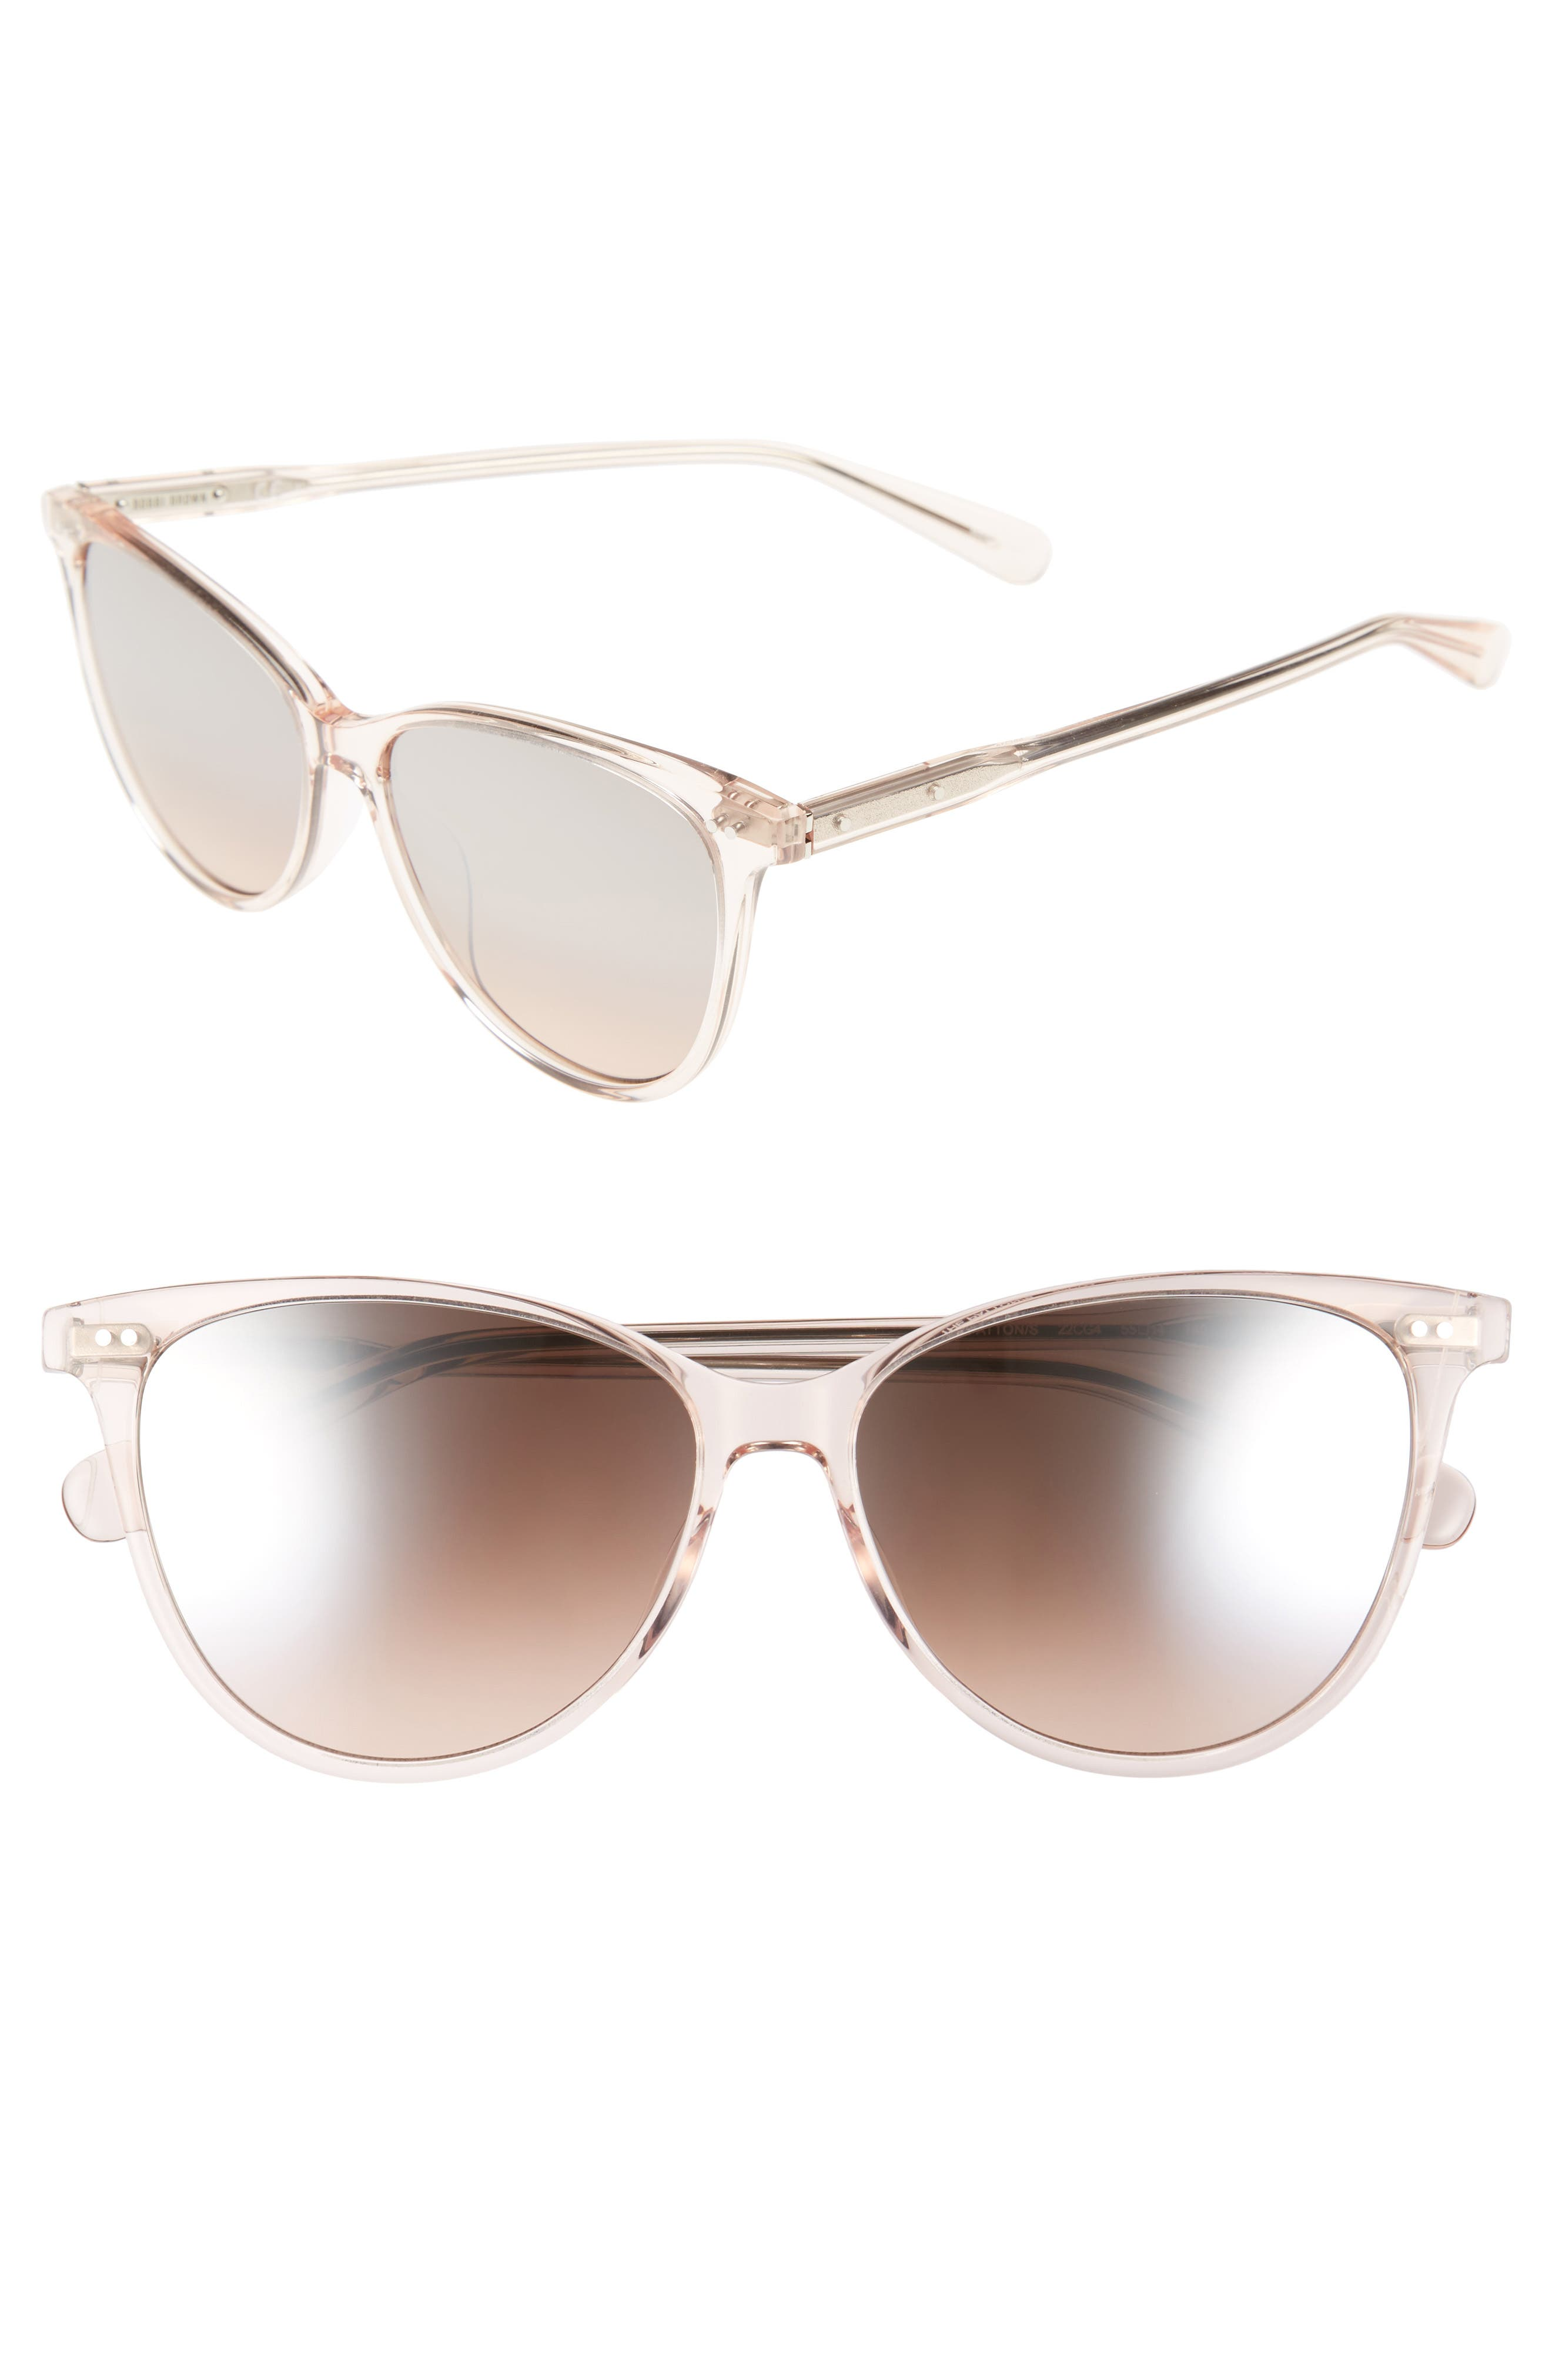 Main Image - Bobbi Brown The Patton 55mm Gradient Cat Eye Sunglasses